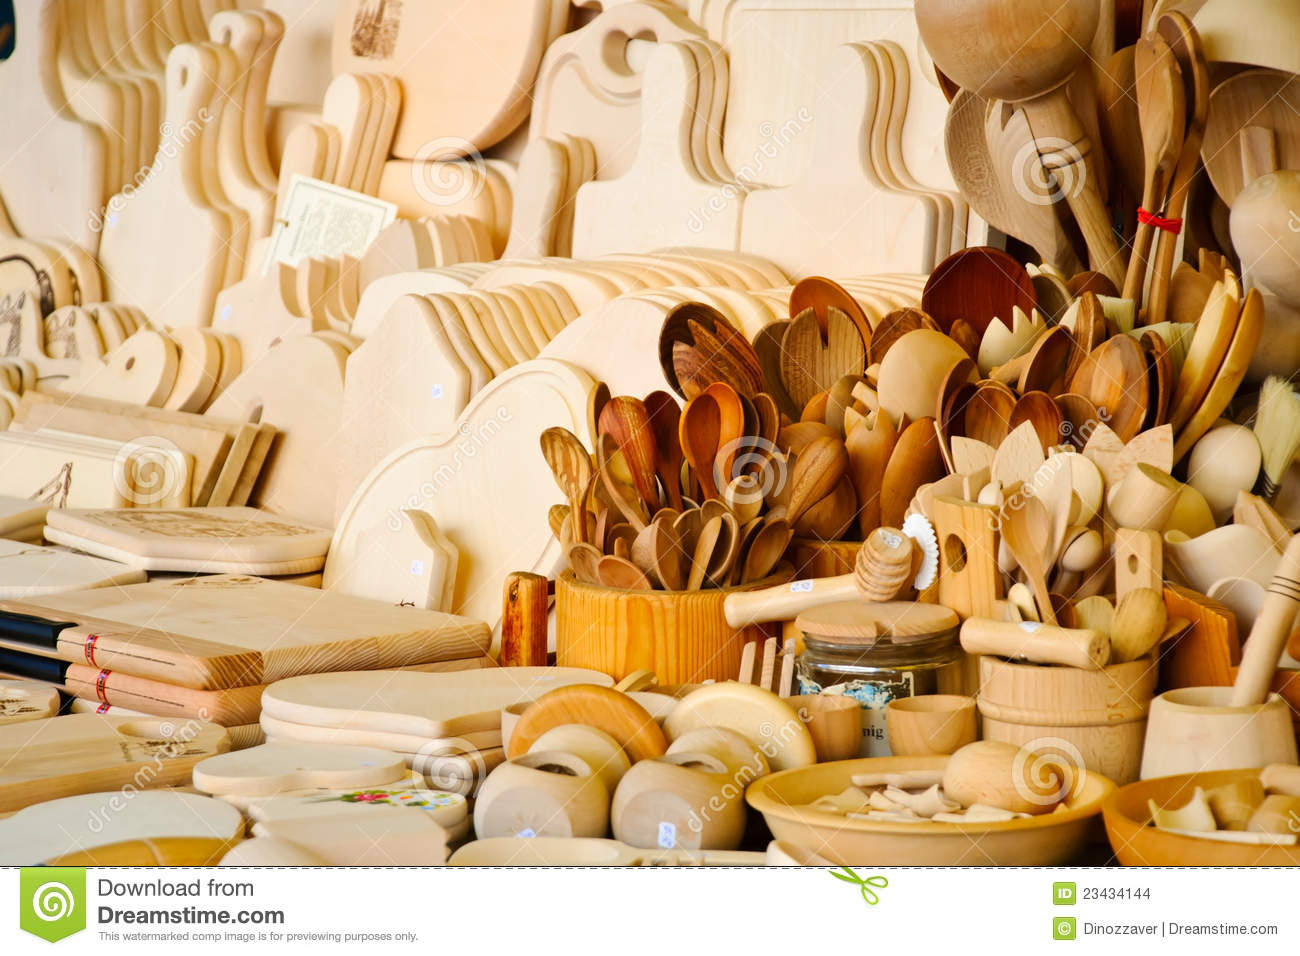 Wooden Kitchen Accessories Stock Images - Image: 23434144